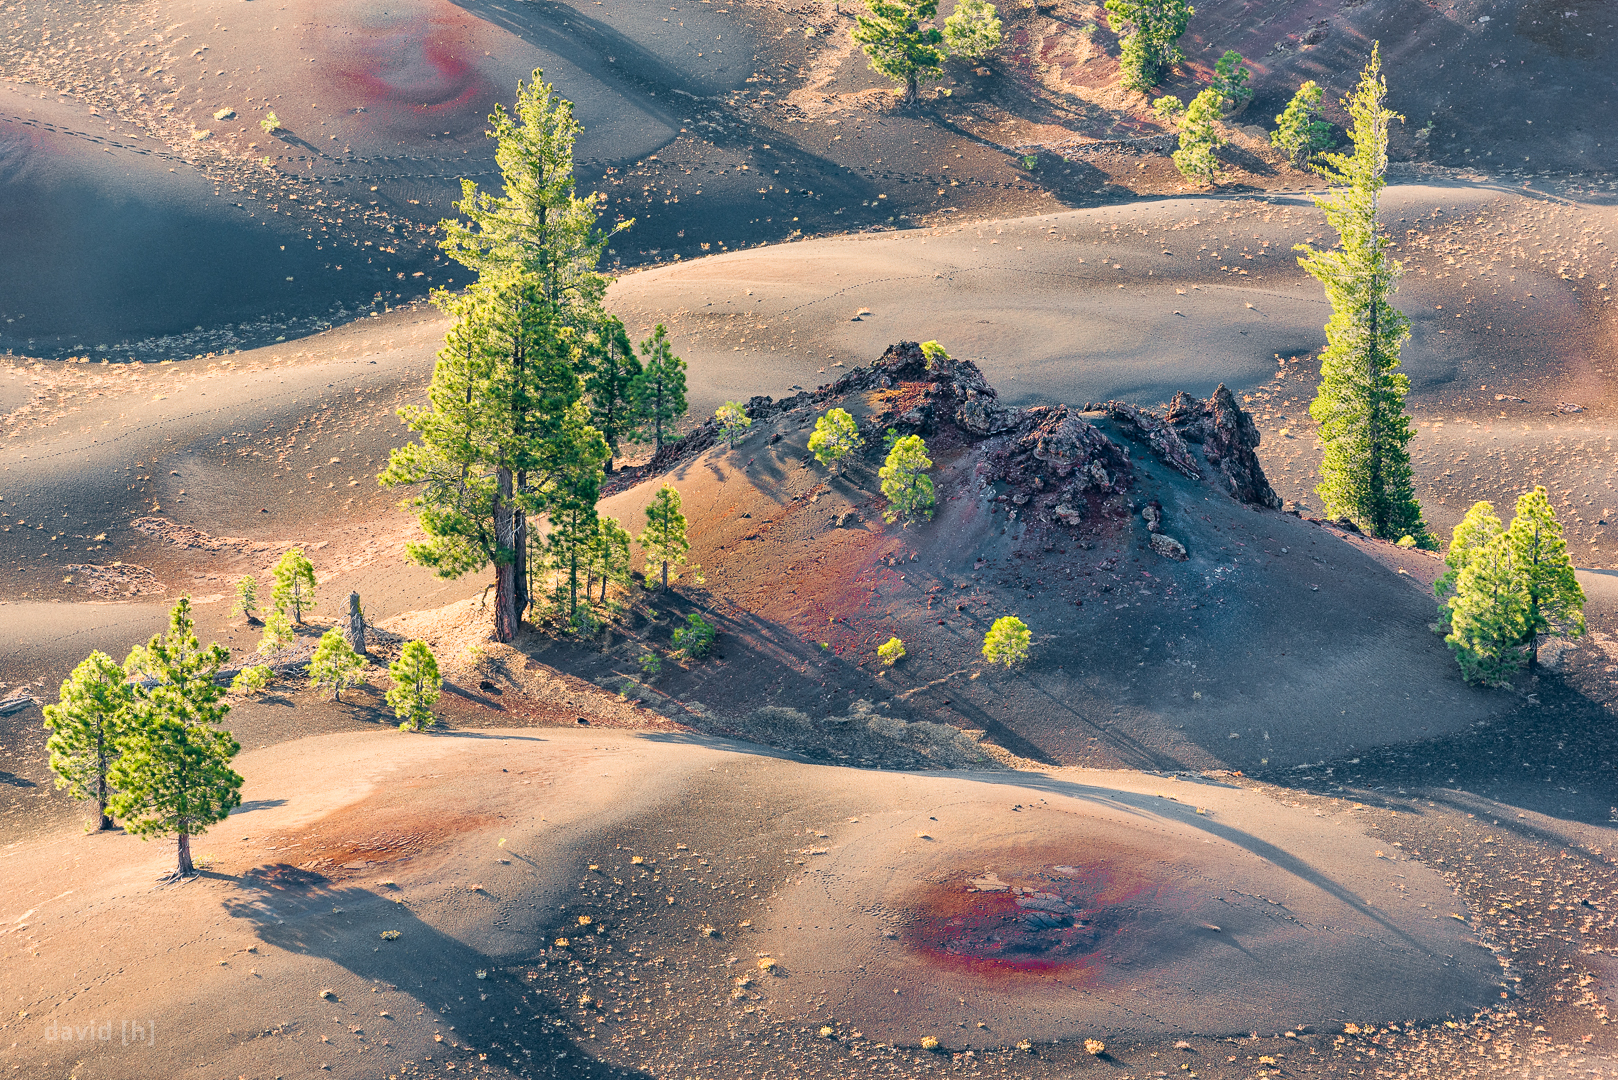 The Painted Dunes are a spectacular sight best enjoyed during the golden hours from the top of Cinder Cone.